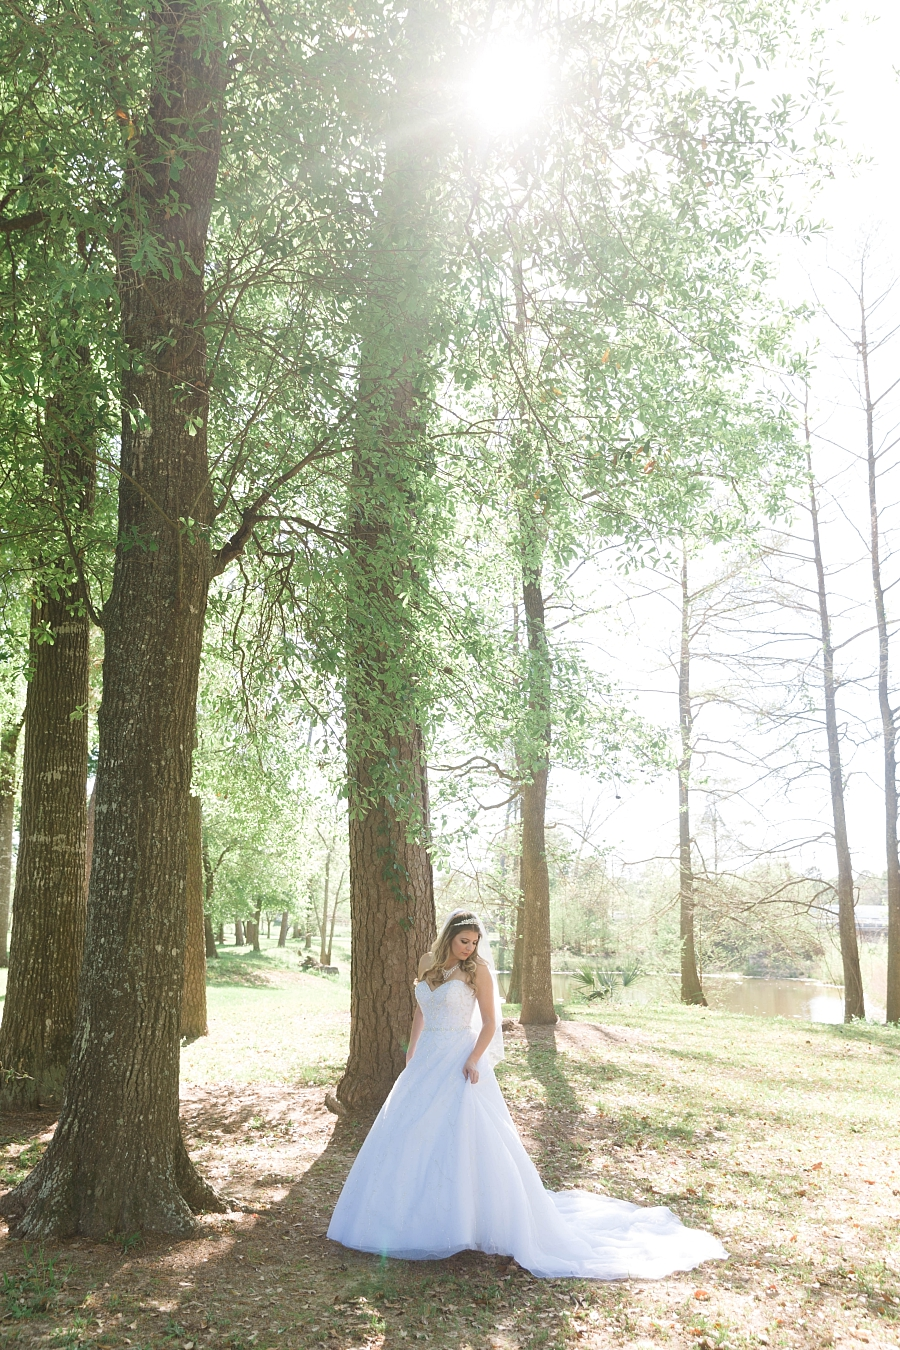 Stacy-Anderson-Photography-Shirley-Acres-Wedding-Photographer_0012.jpg